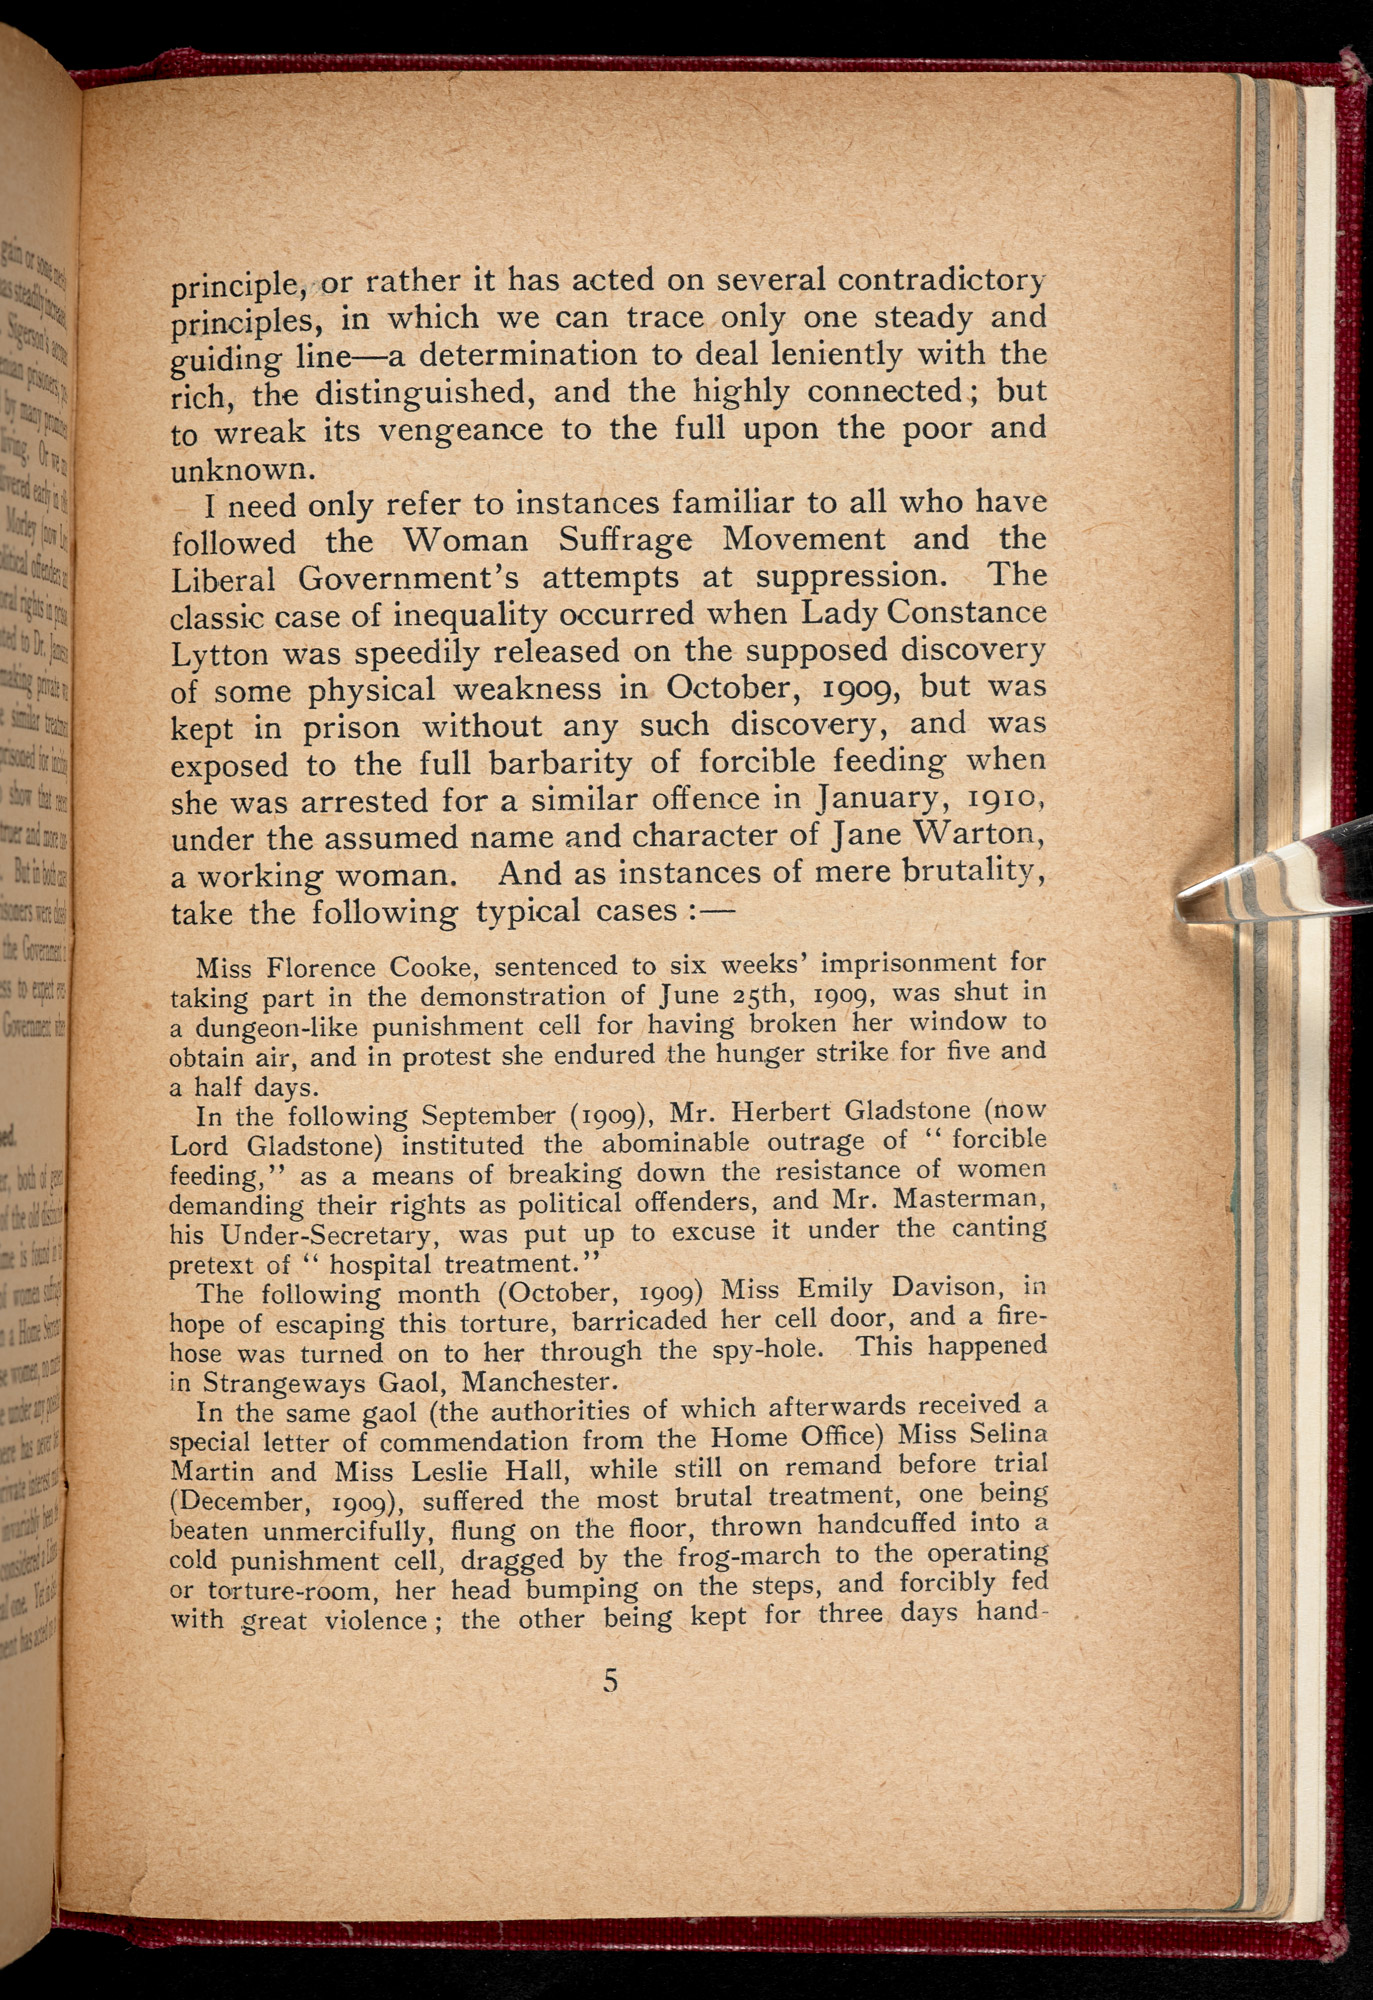 Custodia Honesta pamphlet page 5